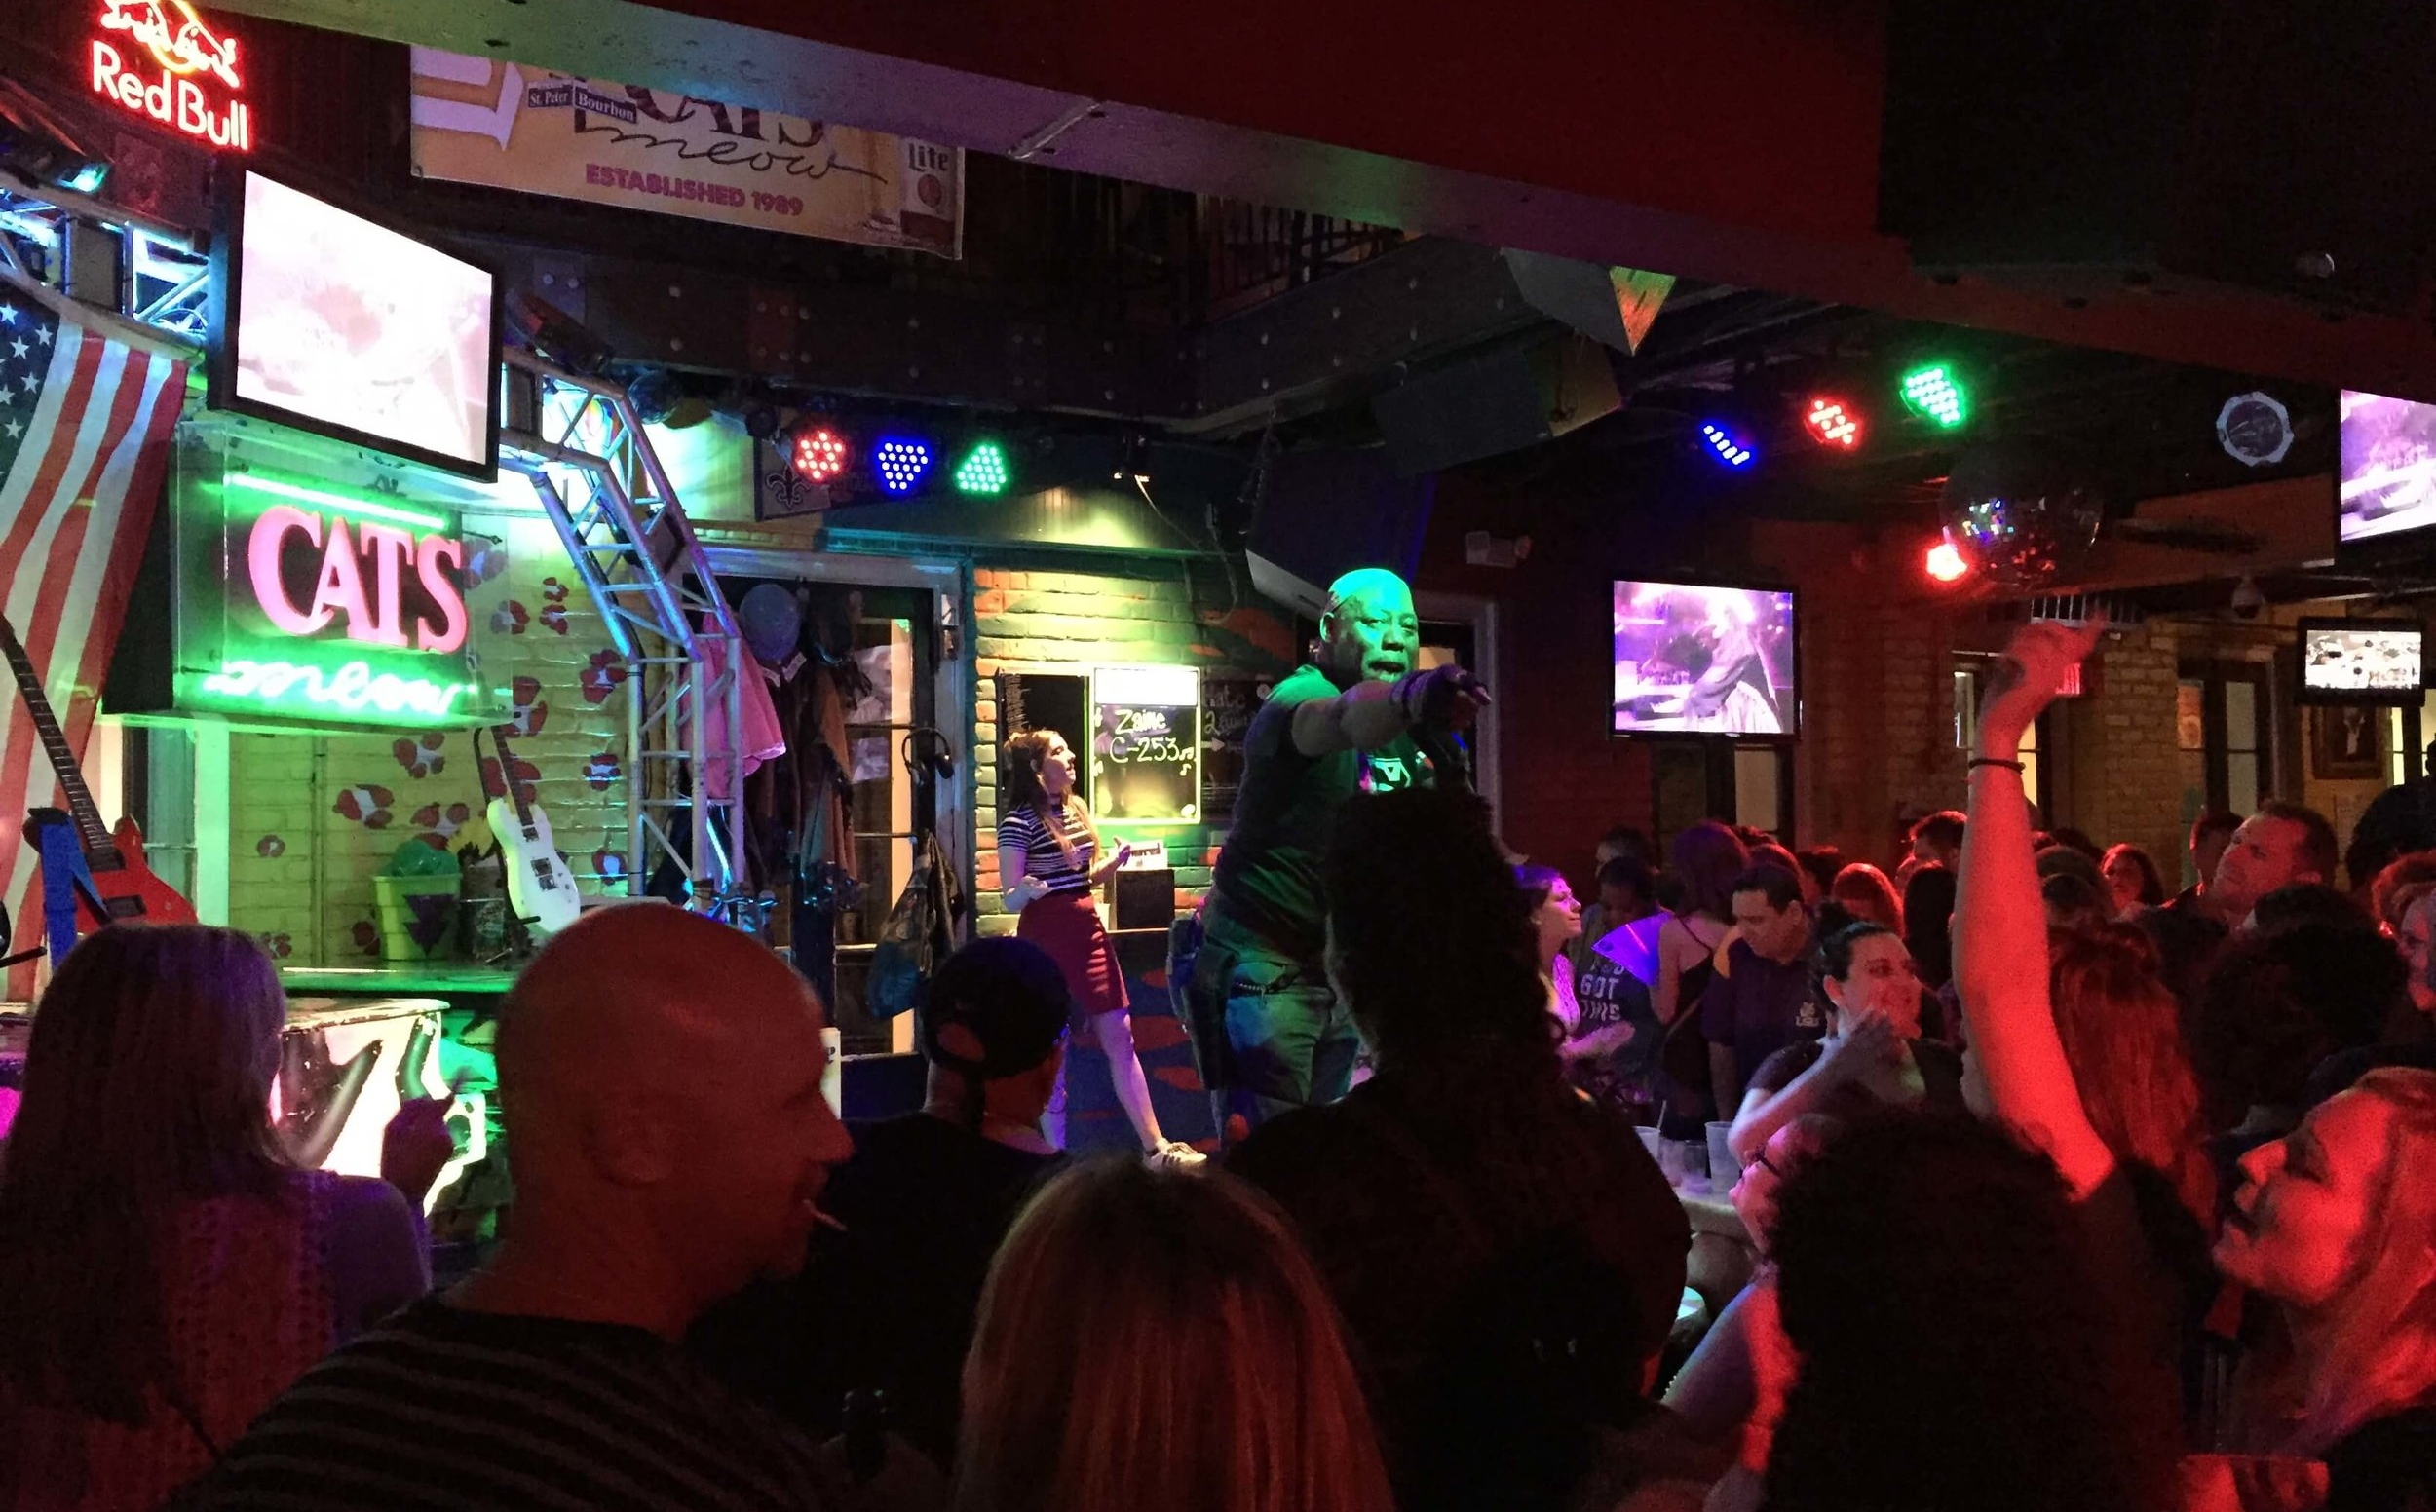 Karaoke at the World Famous Cats Meow on Bourbon Street